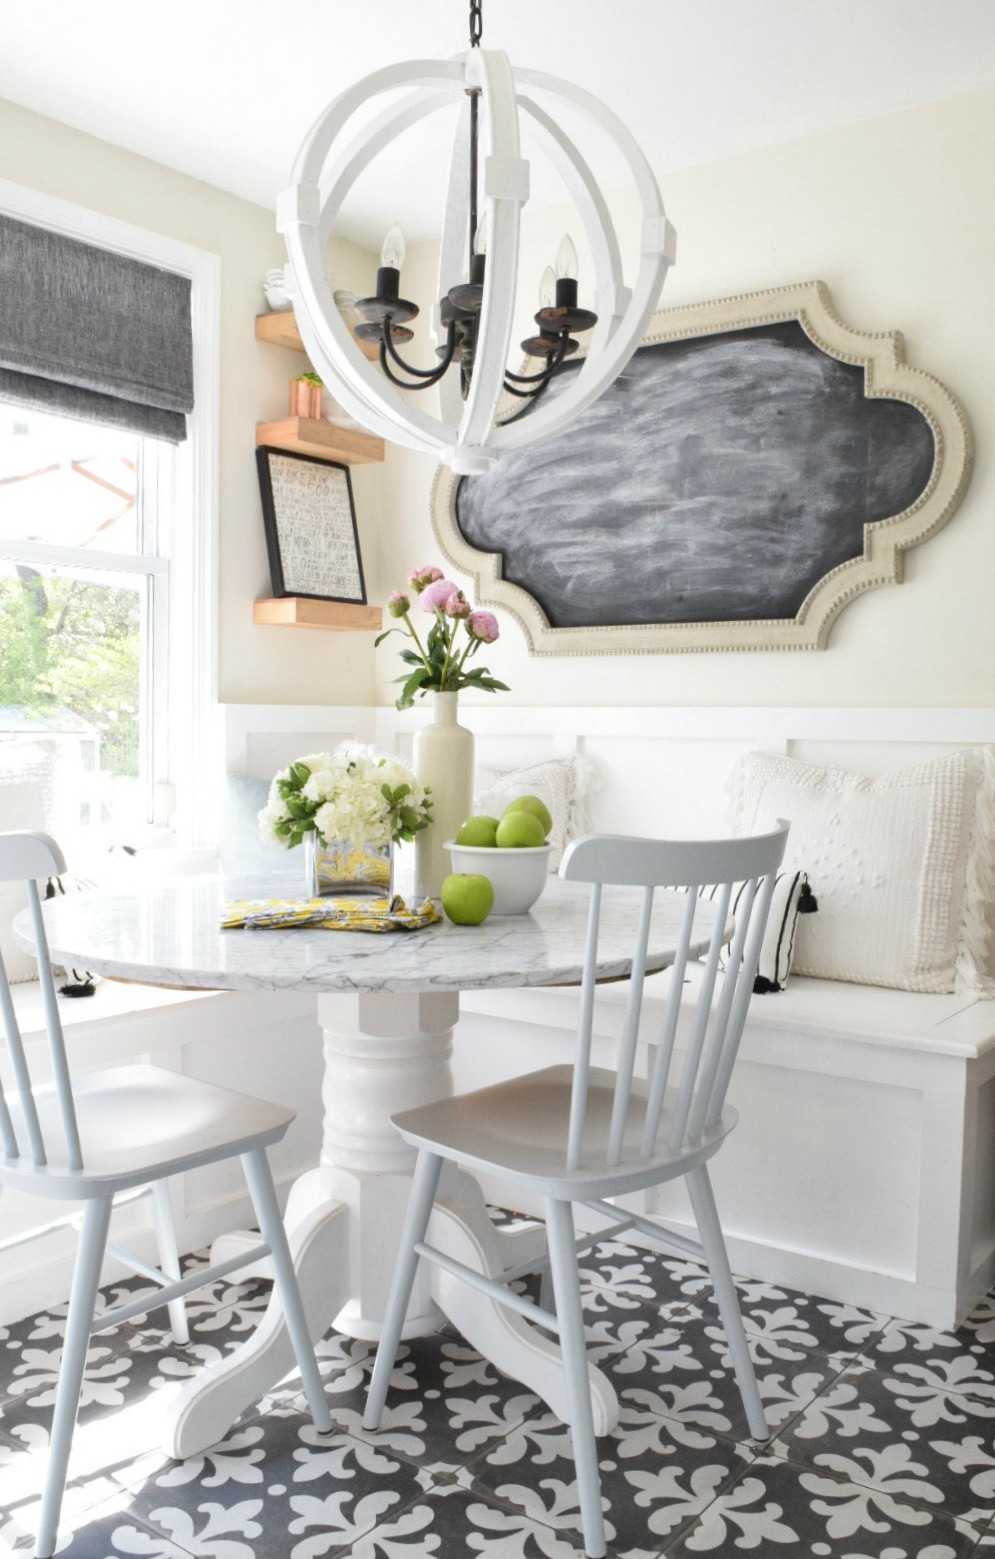 Kitchen Art- 10 Ideas for Art in the Kitchen - Nesting ...